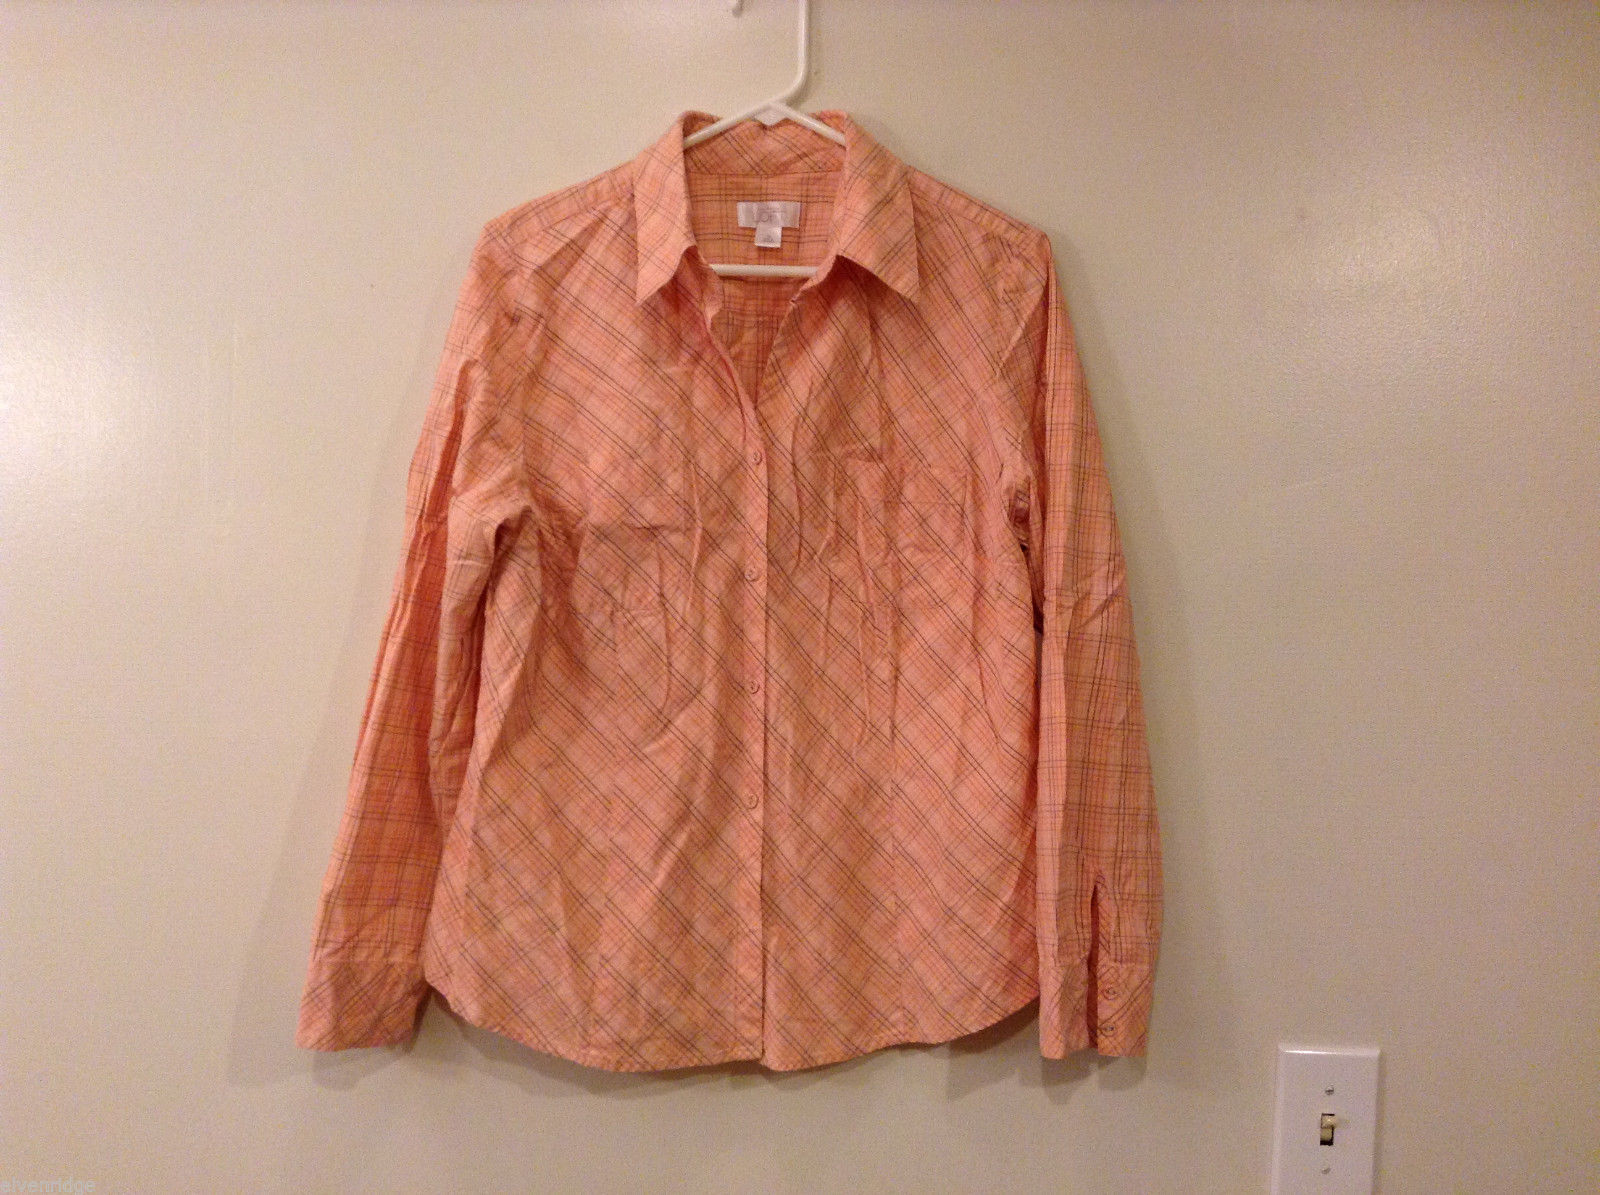 Ann Taylor Loft Light Pink Plaid 100% Cotton Shirt Blouse, size 16